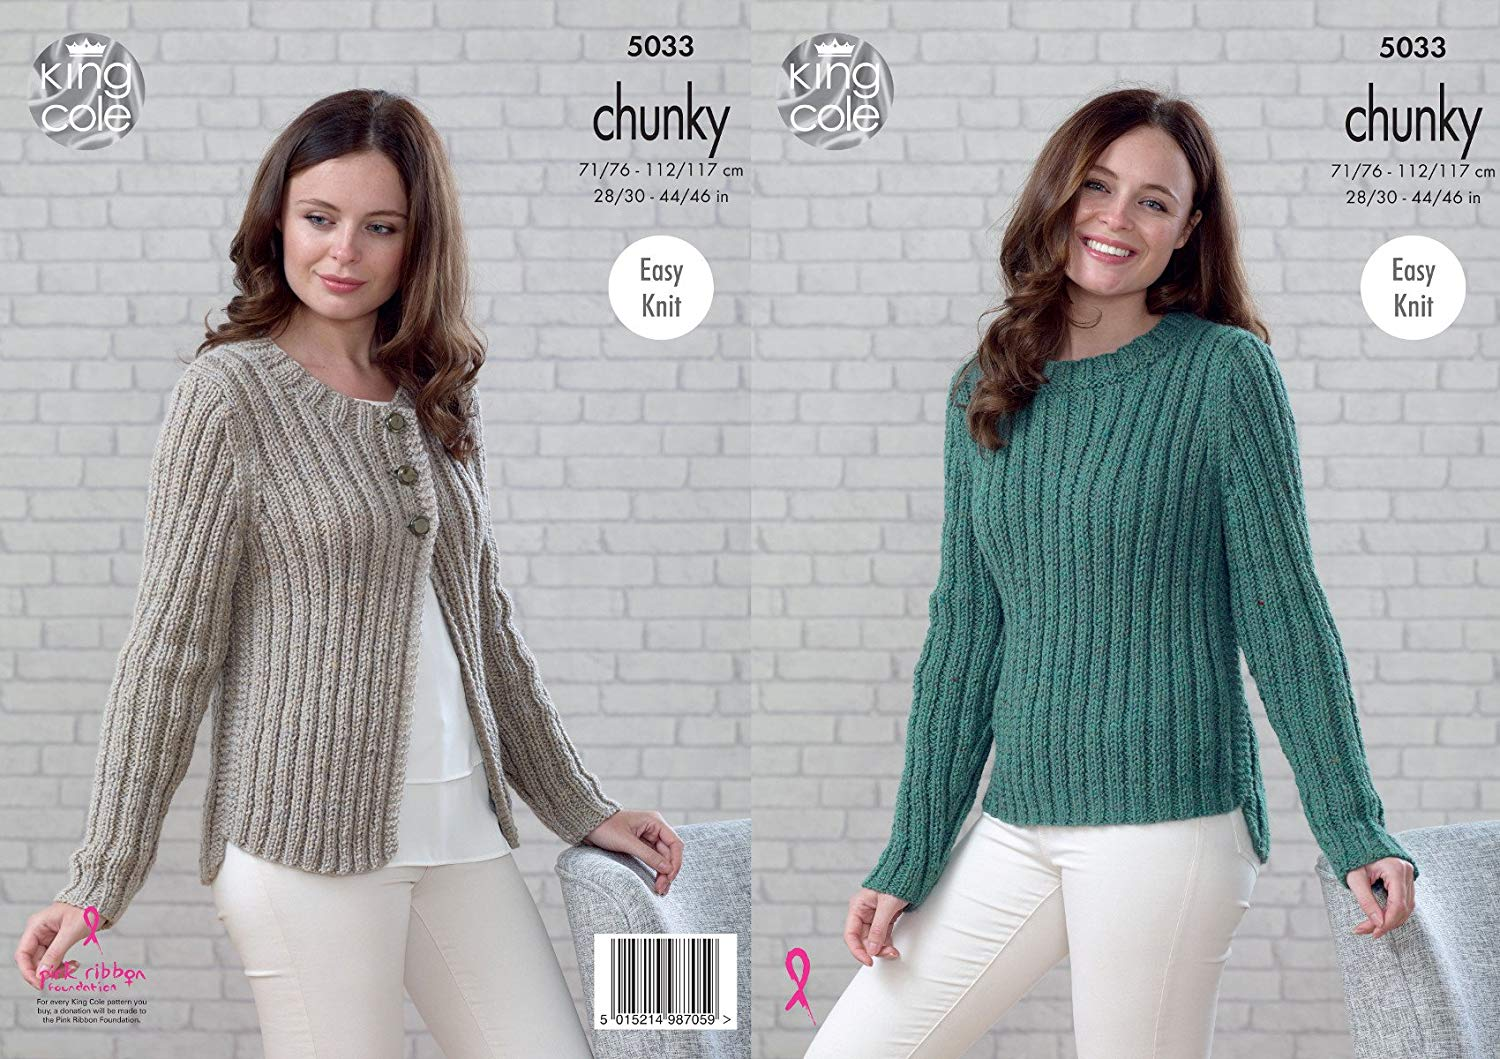 2b6b2c636 Get Quotations · King Cole Ladies Chunky Knitting Pattern Womens Easy Knit  Ribbed Sweater   Cardigan (5033)